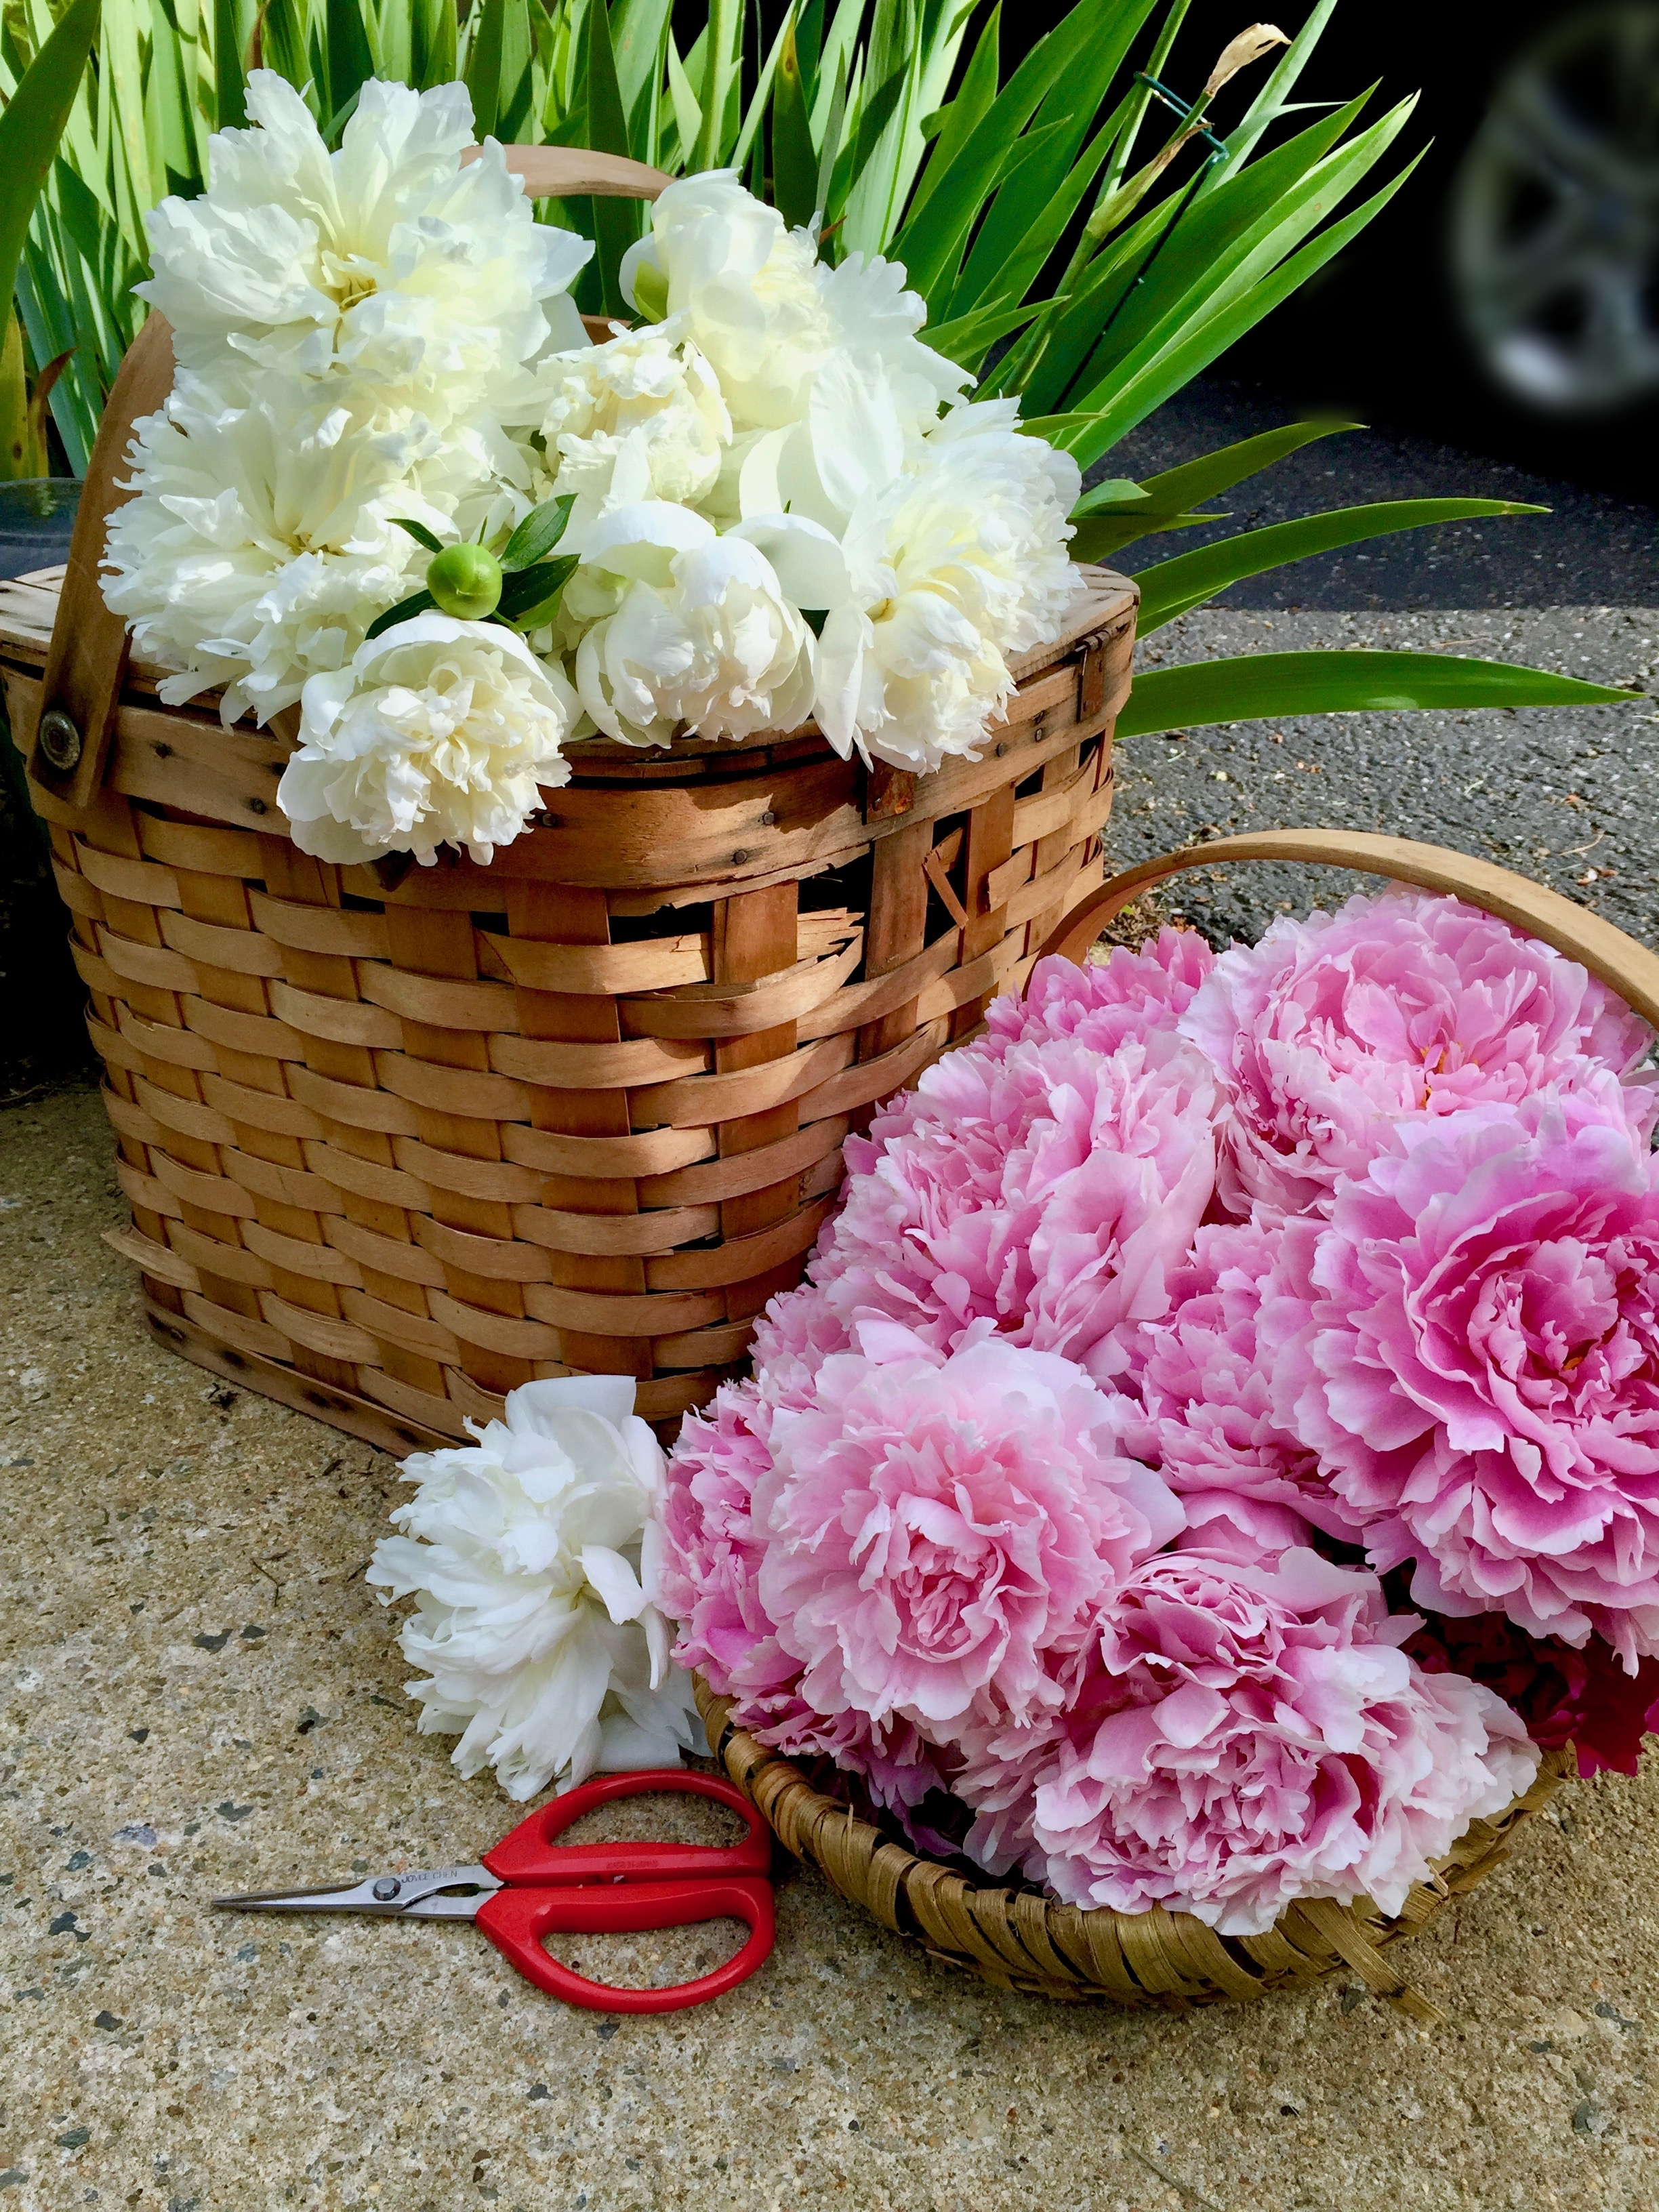 pink and white peonies in basket.jpg